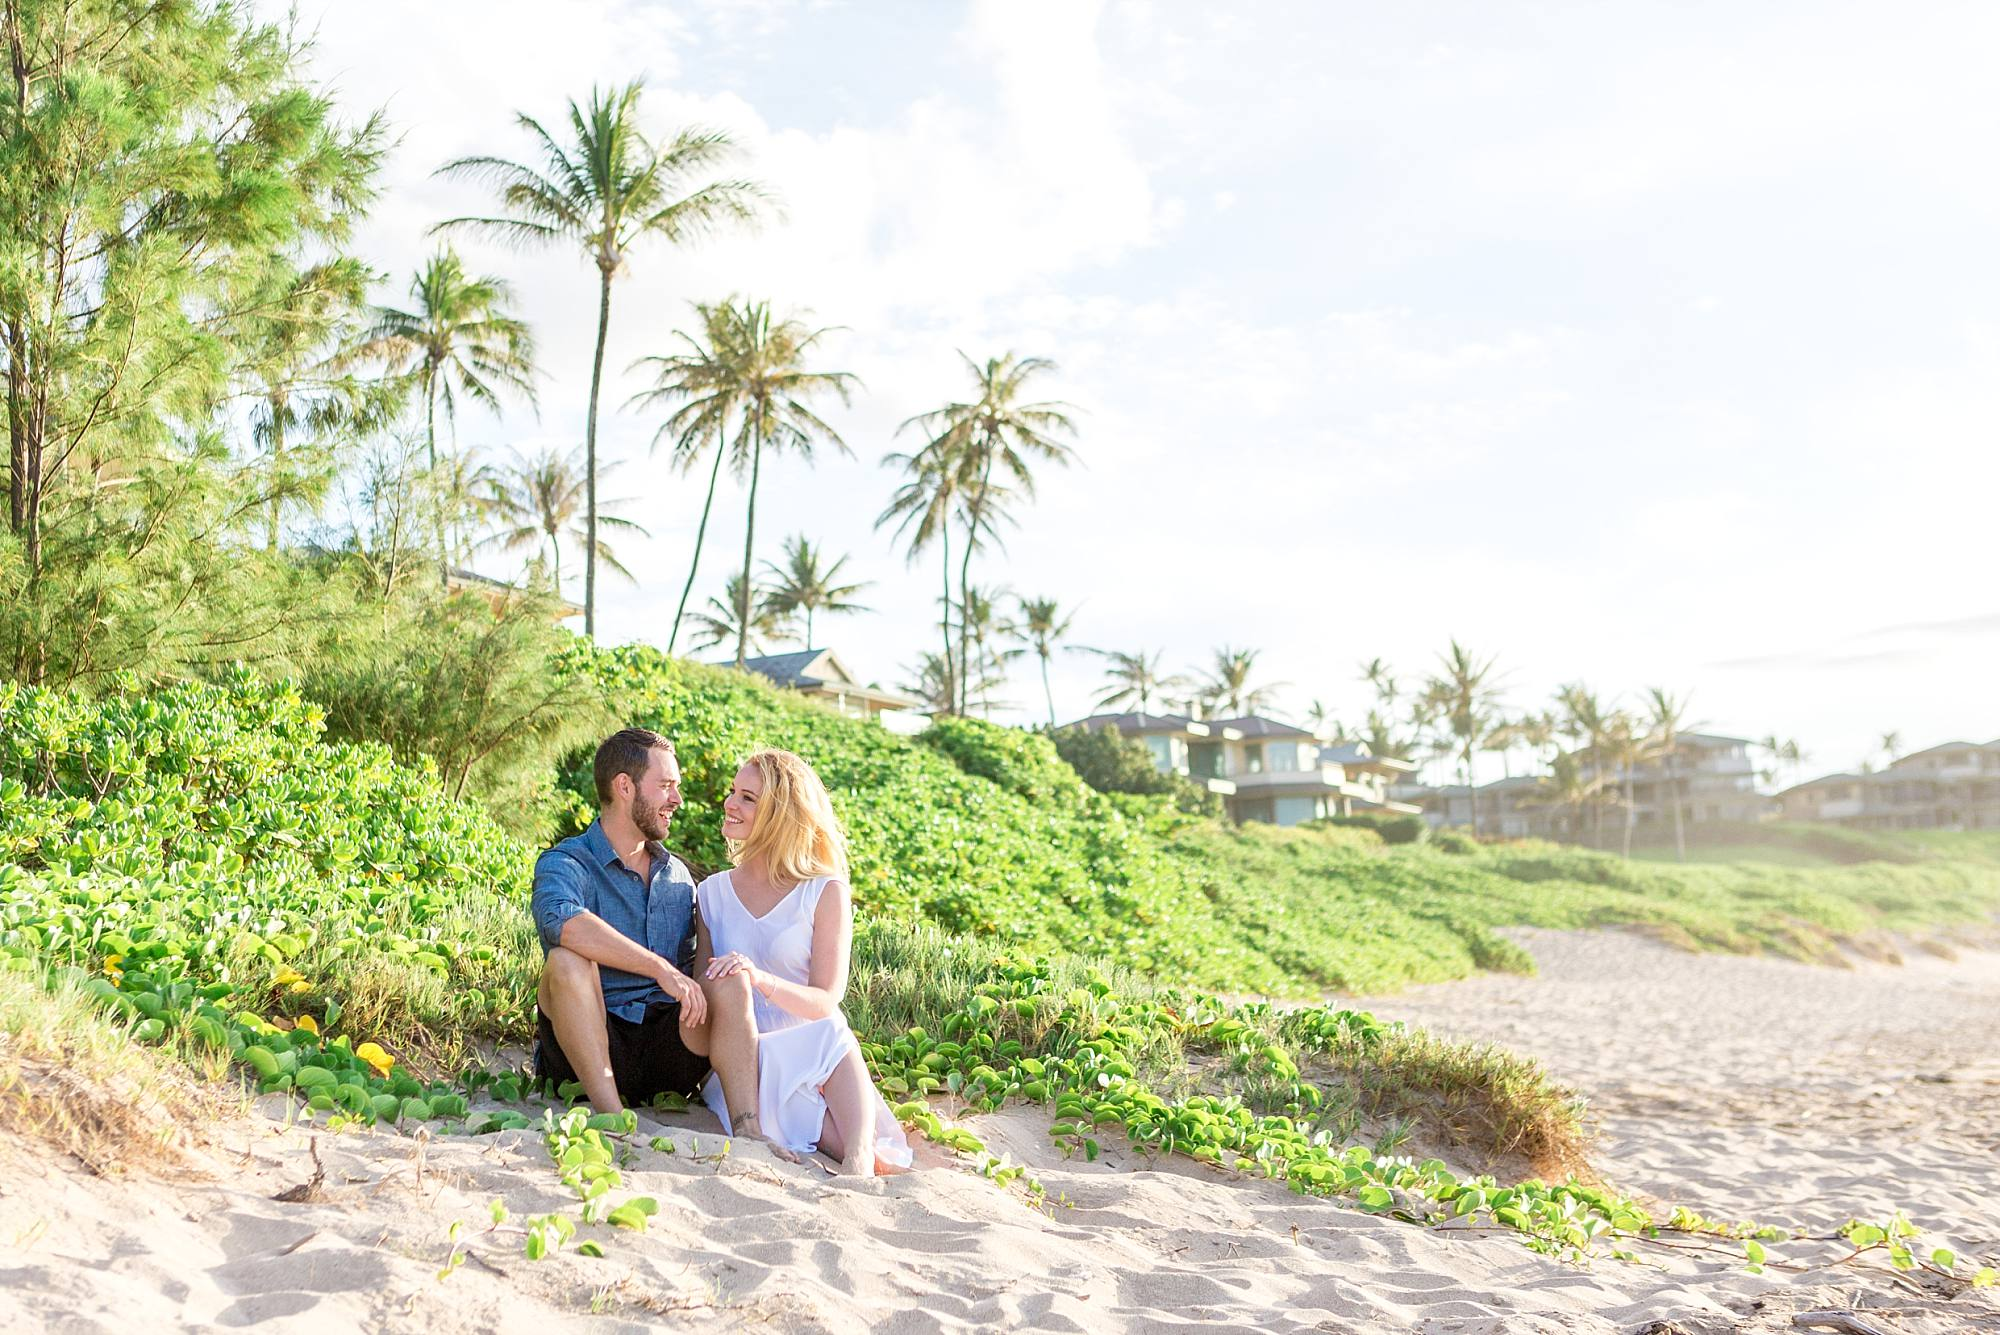 couple canoodling in the sand with bright greenery surrounding them